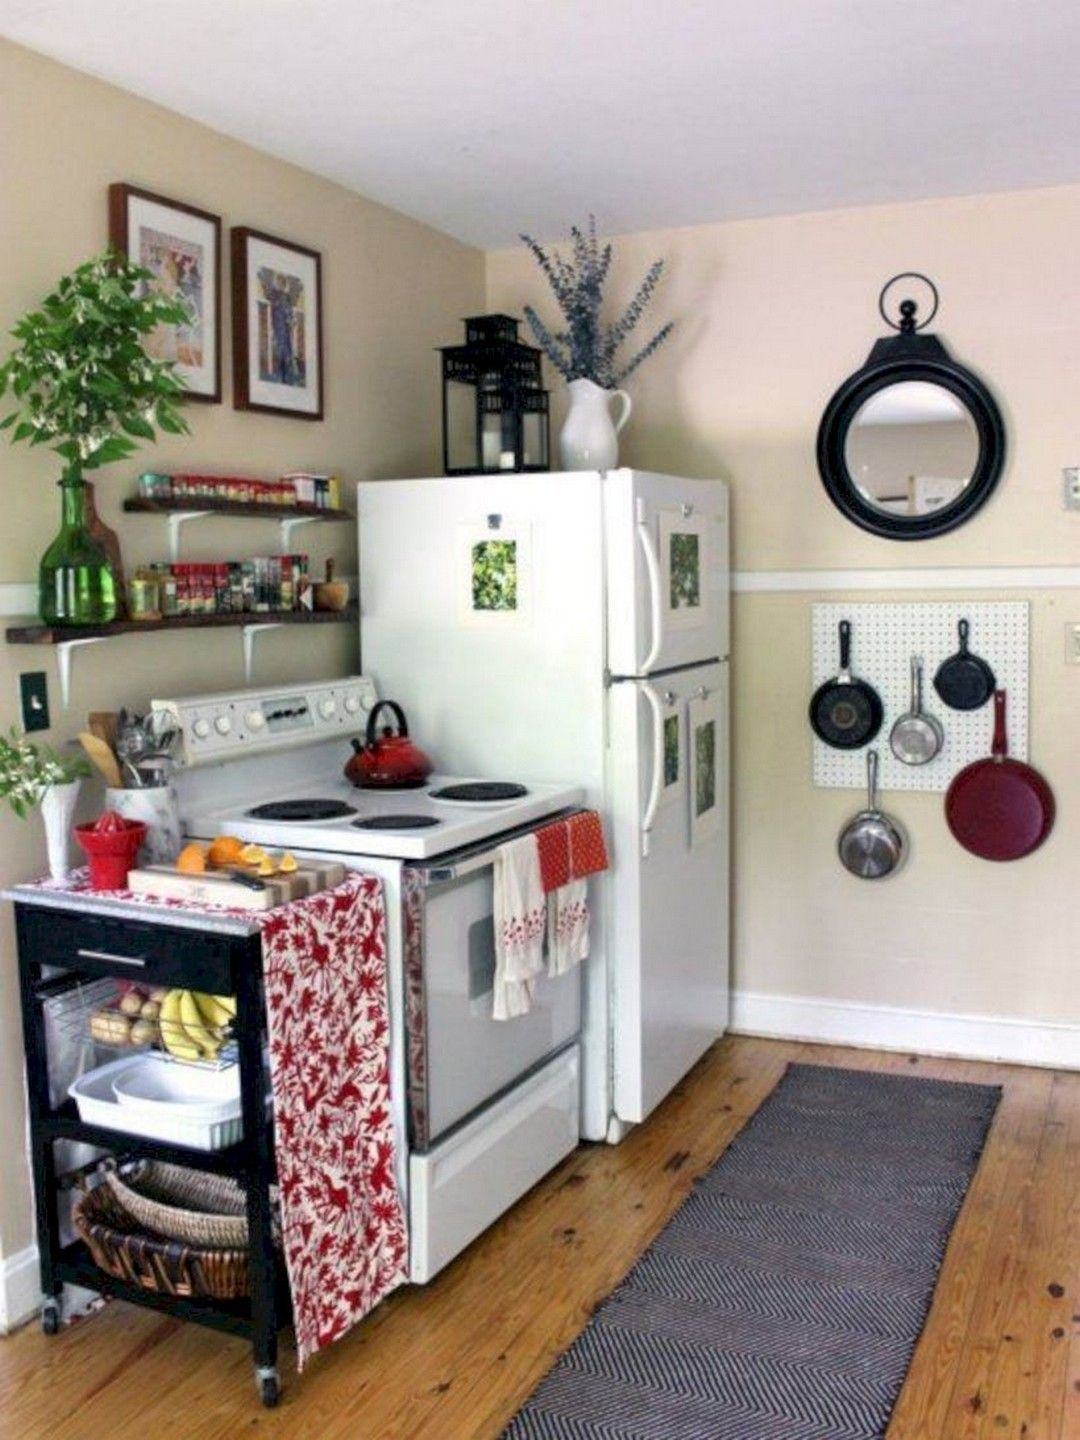 10 Clever Ways To Improve Your Apartment On A Budget Small Apartment Kitchen Decor Kitchen Decor Apartment Small Kitchen Decor Apartment kitchen decorating ideas photos